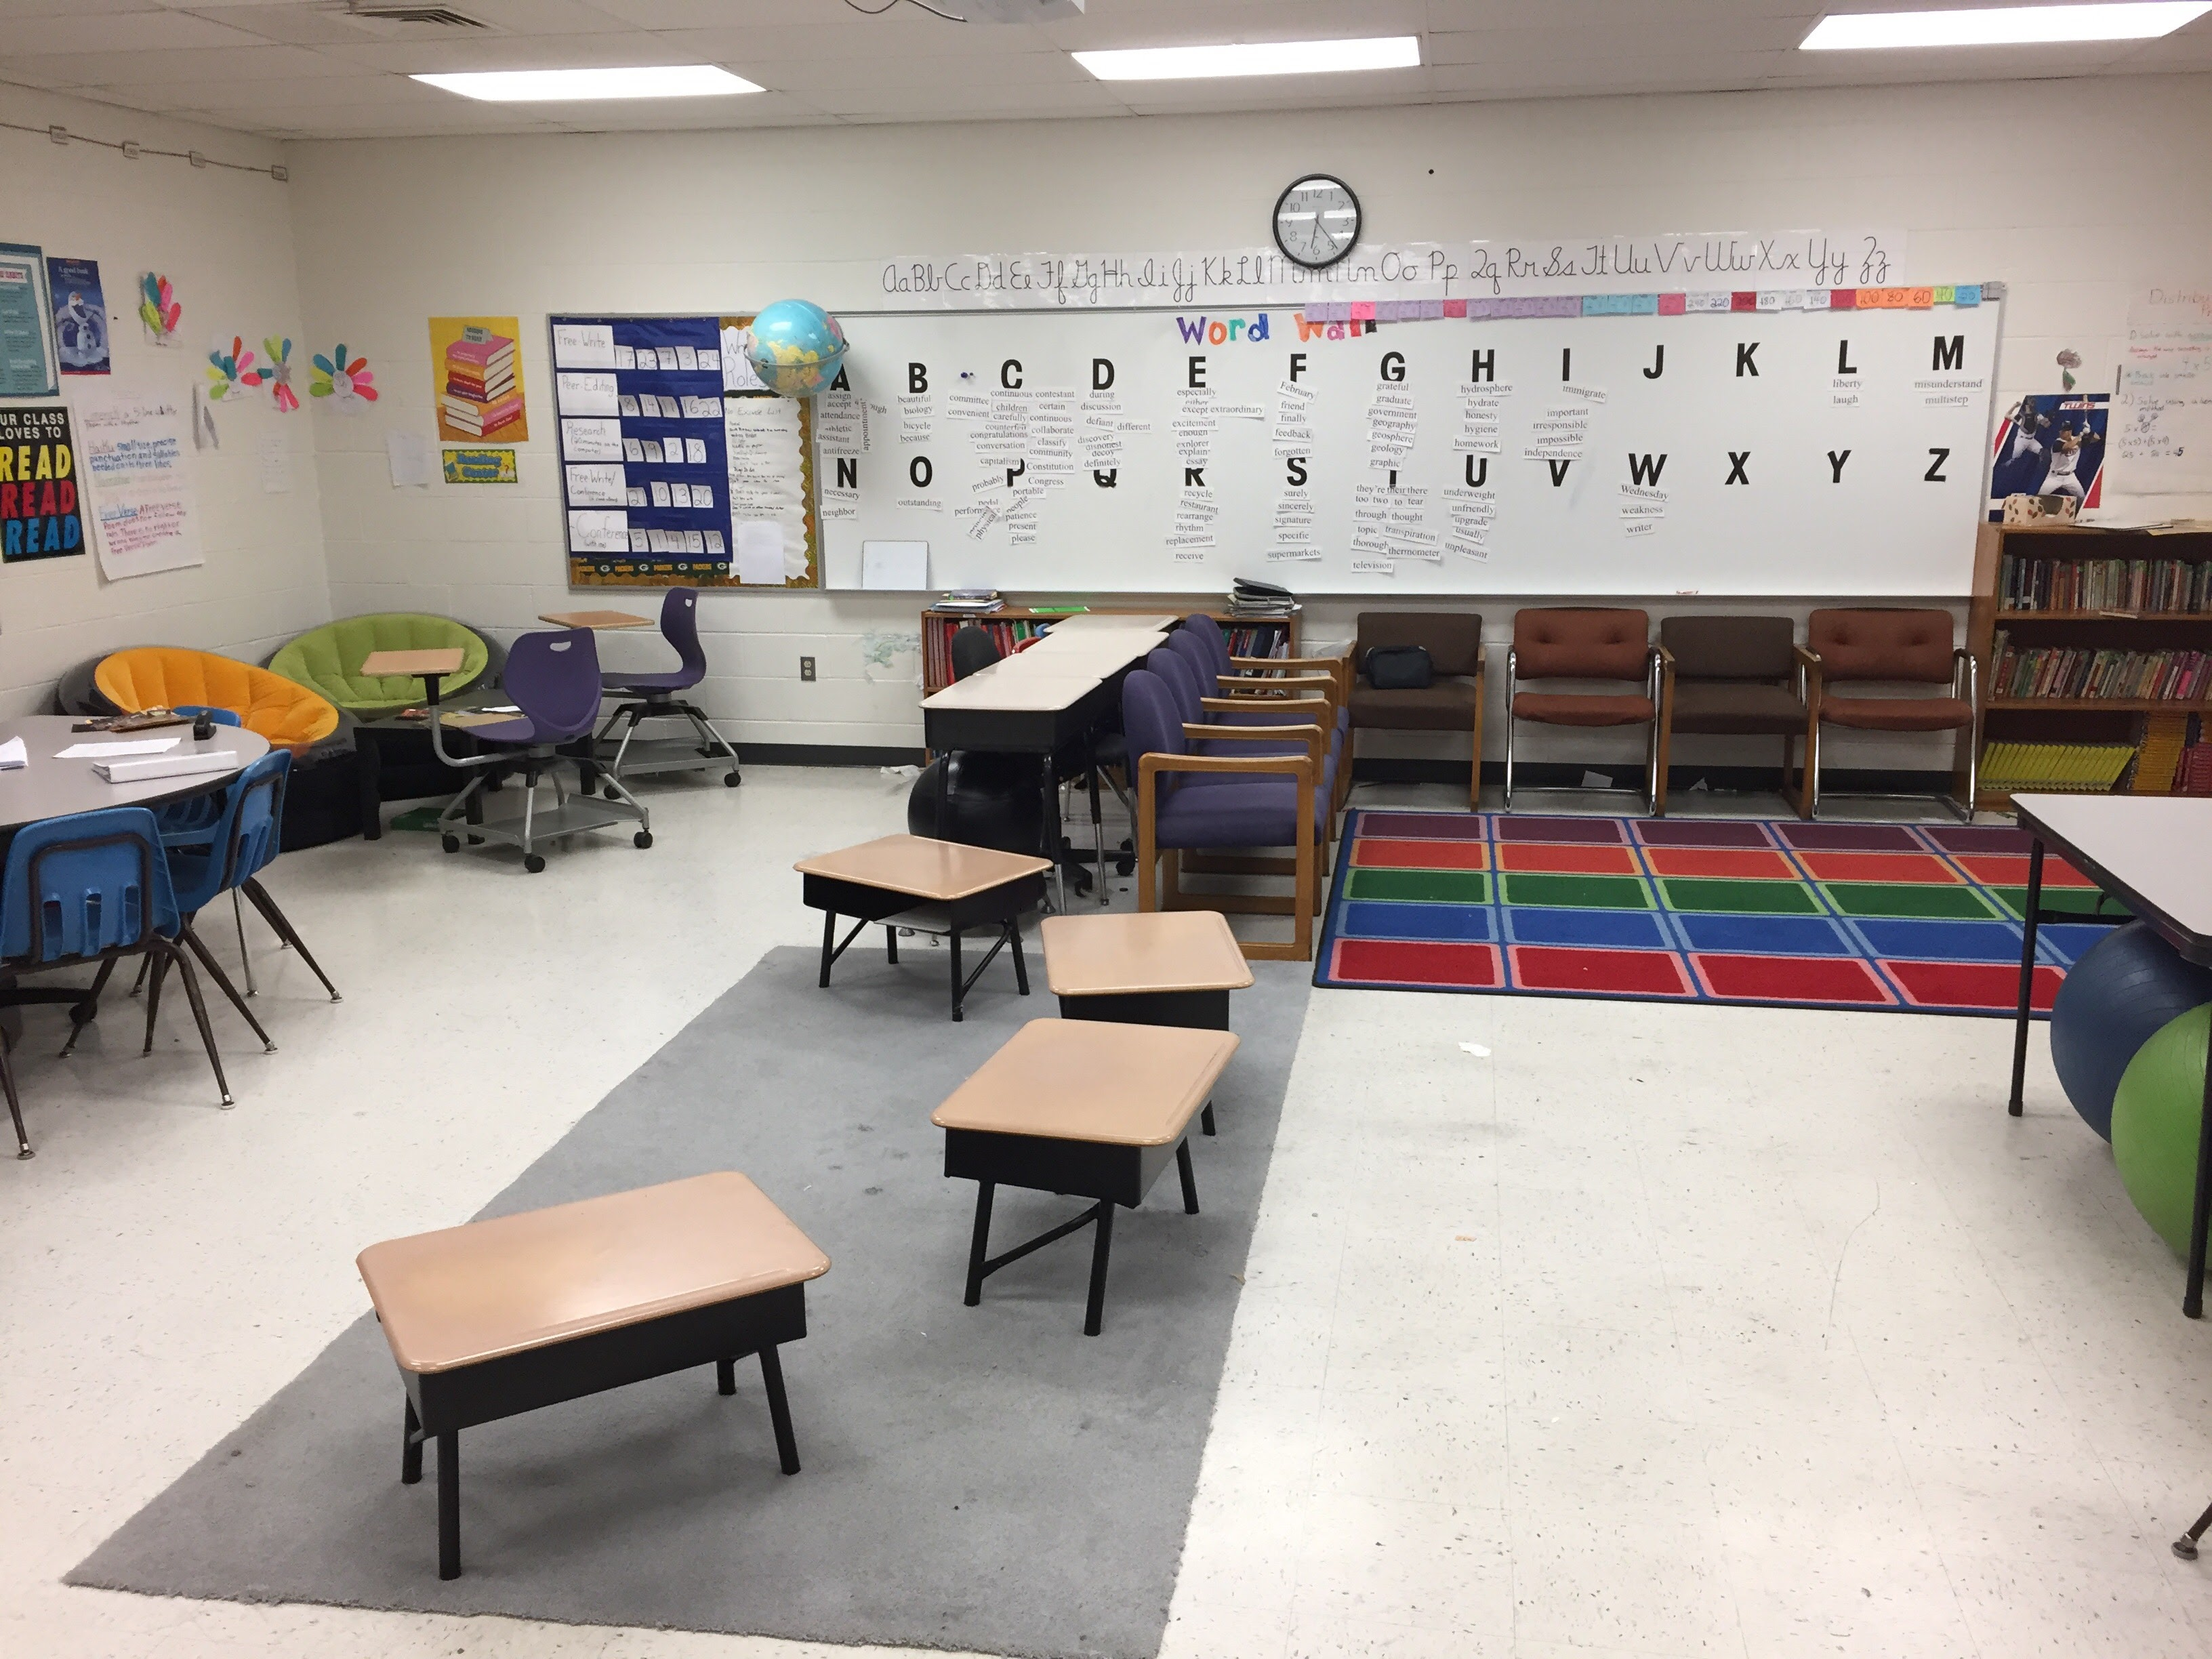 Classroom Setup And Design ~ Ways to upgrade your classroom design cult of pedagogy